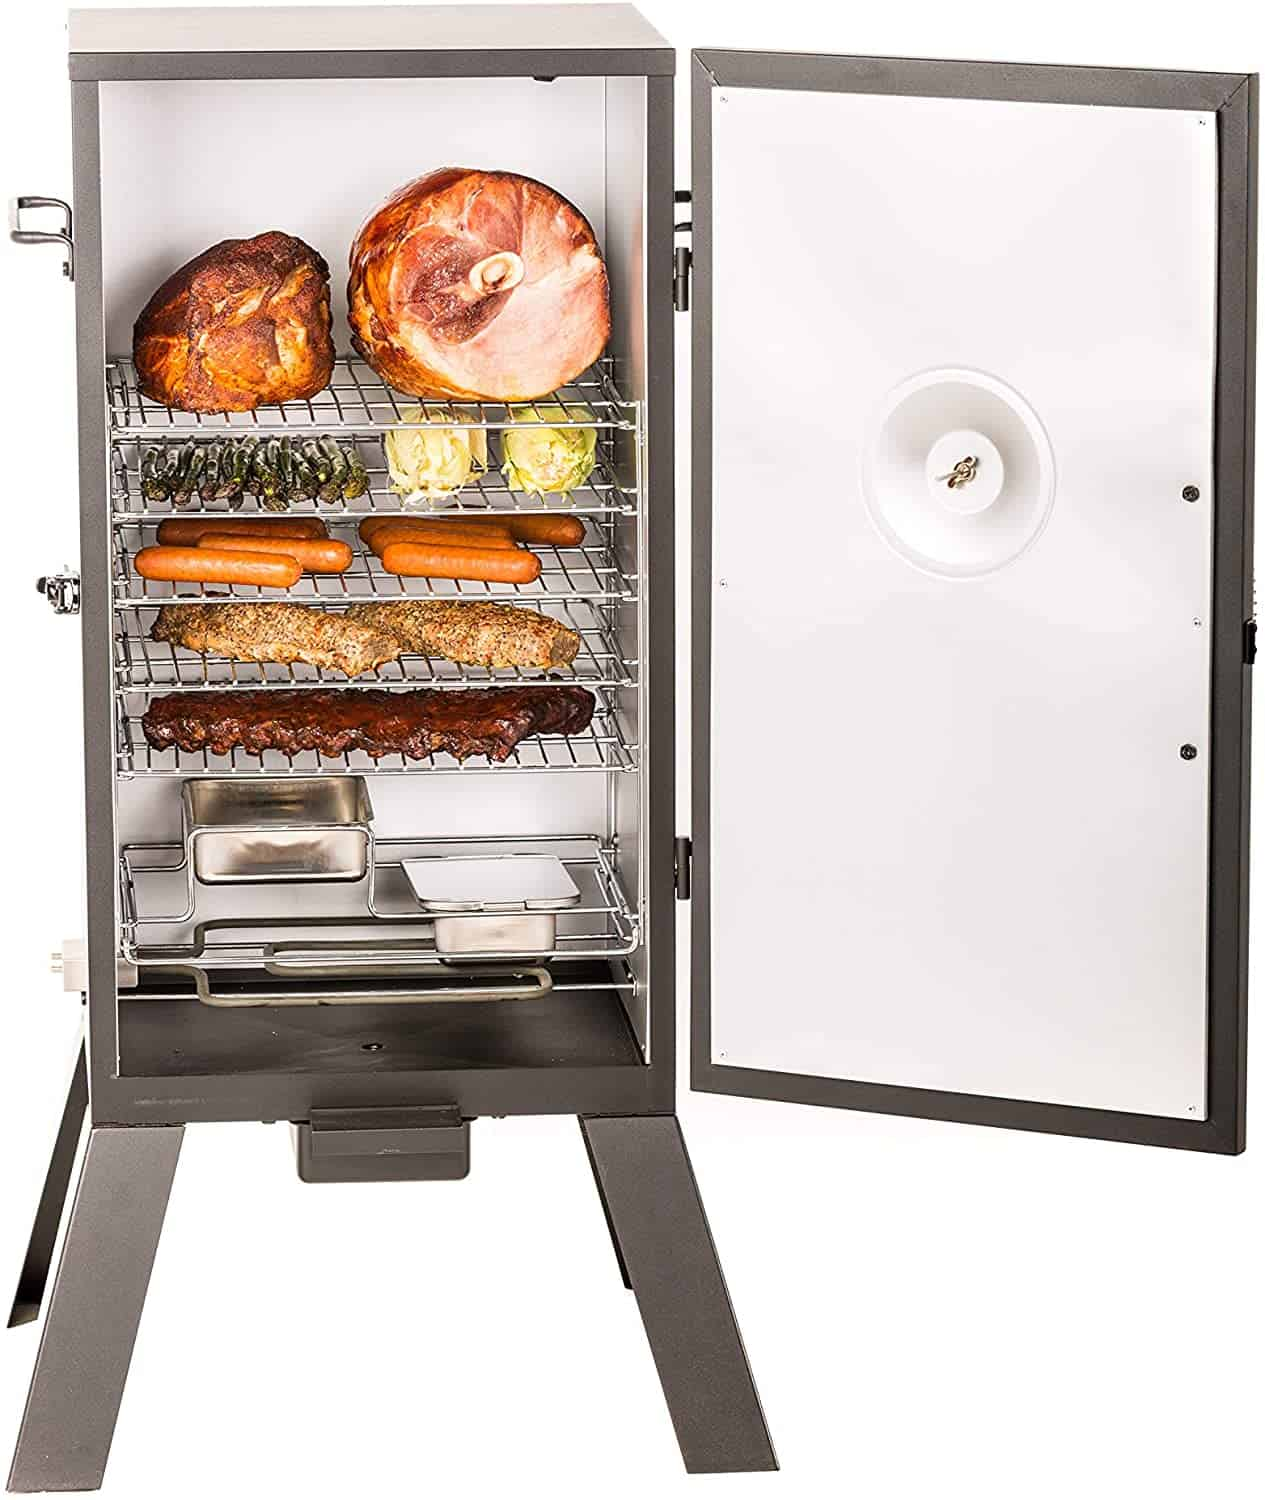 Best electric smoker for ribs (for beginners)- Masterbuilt MB20070210